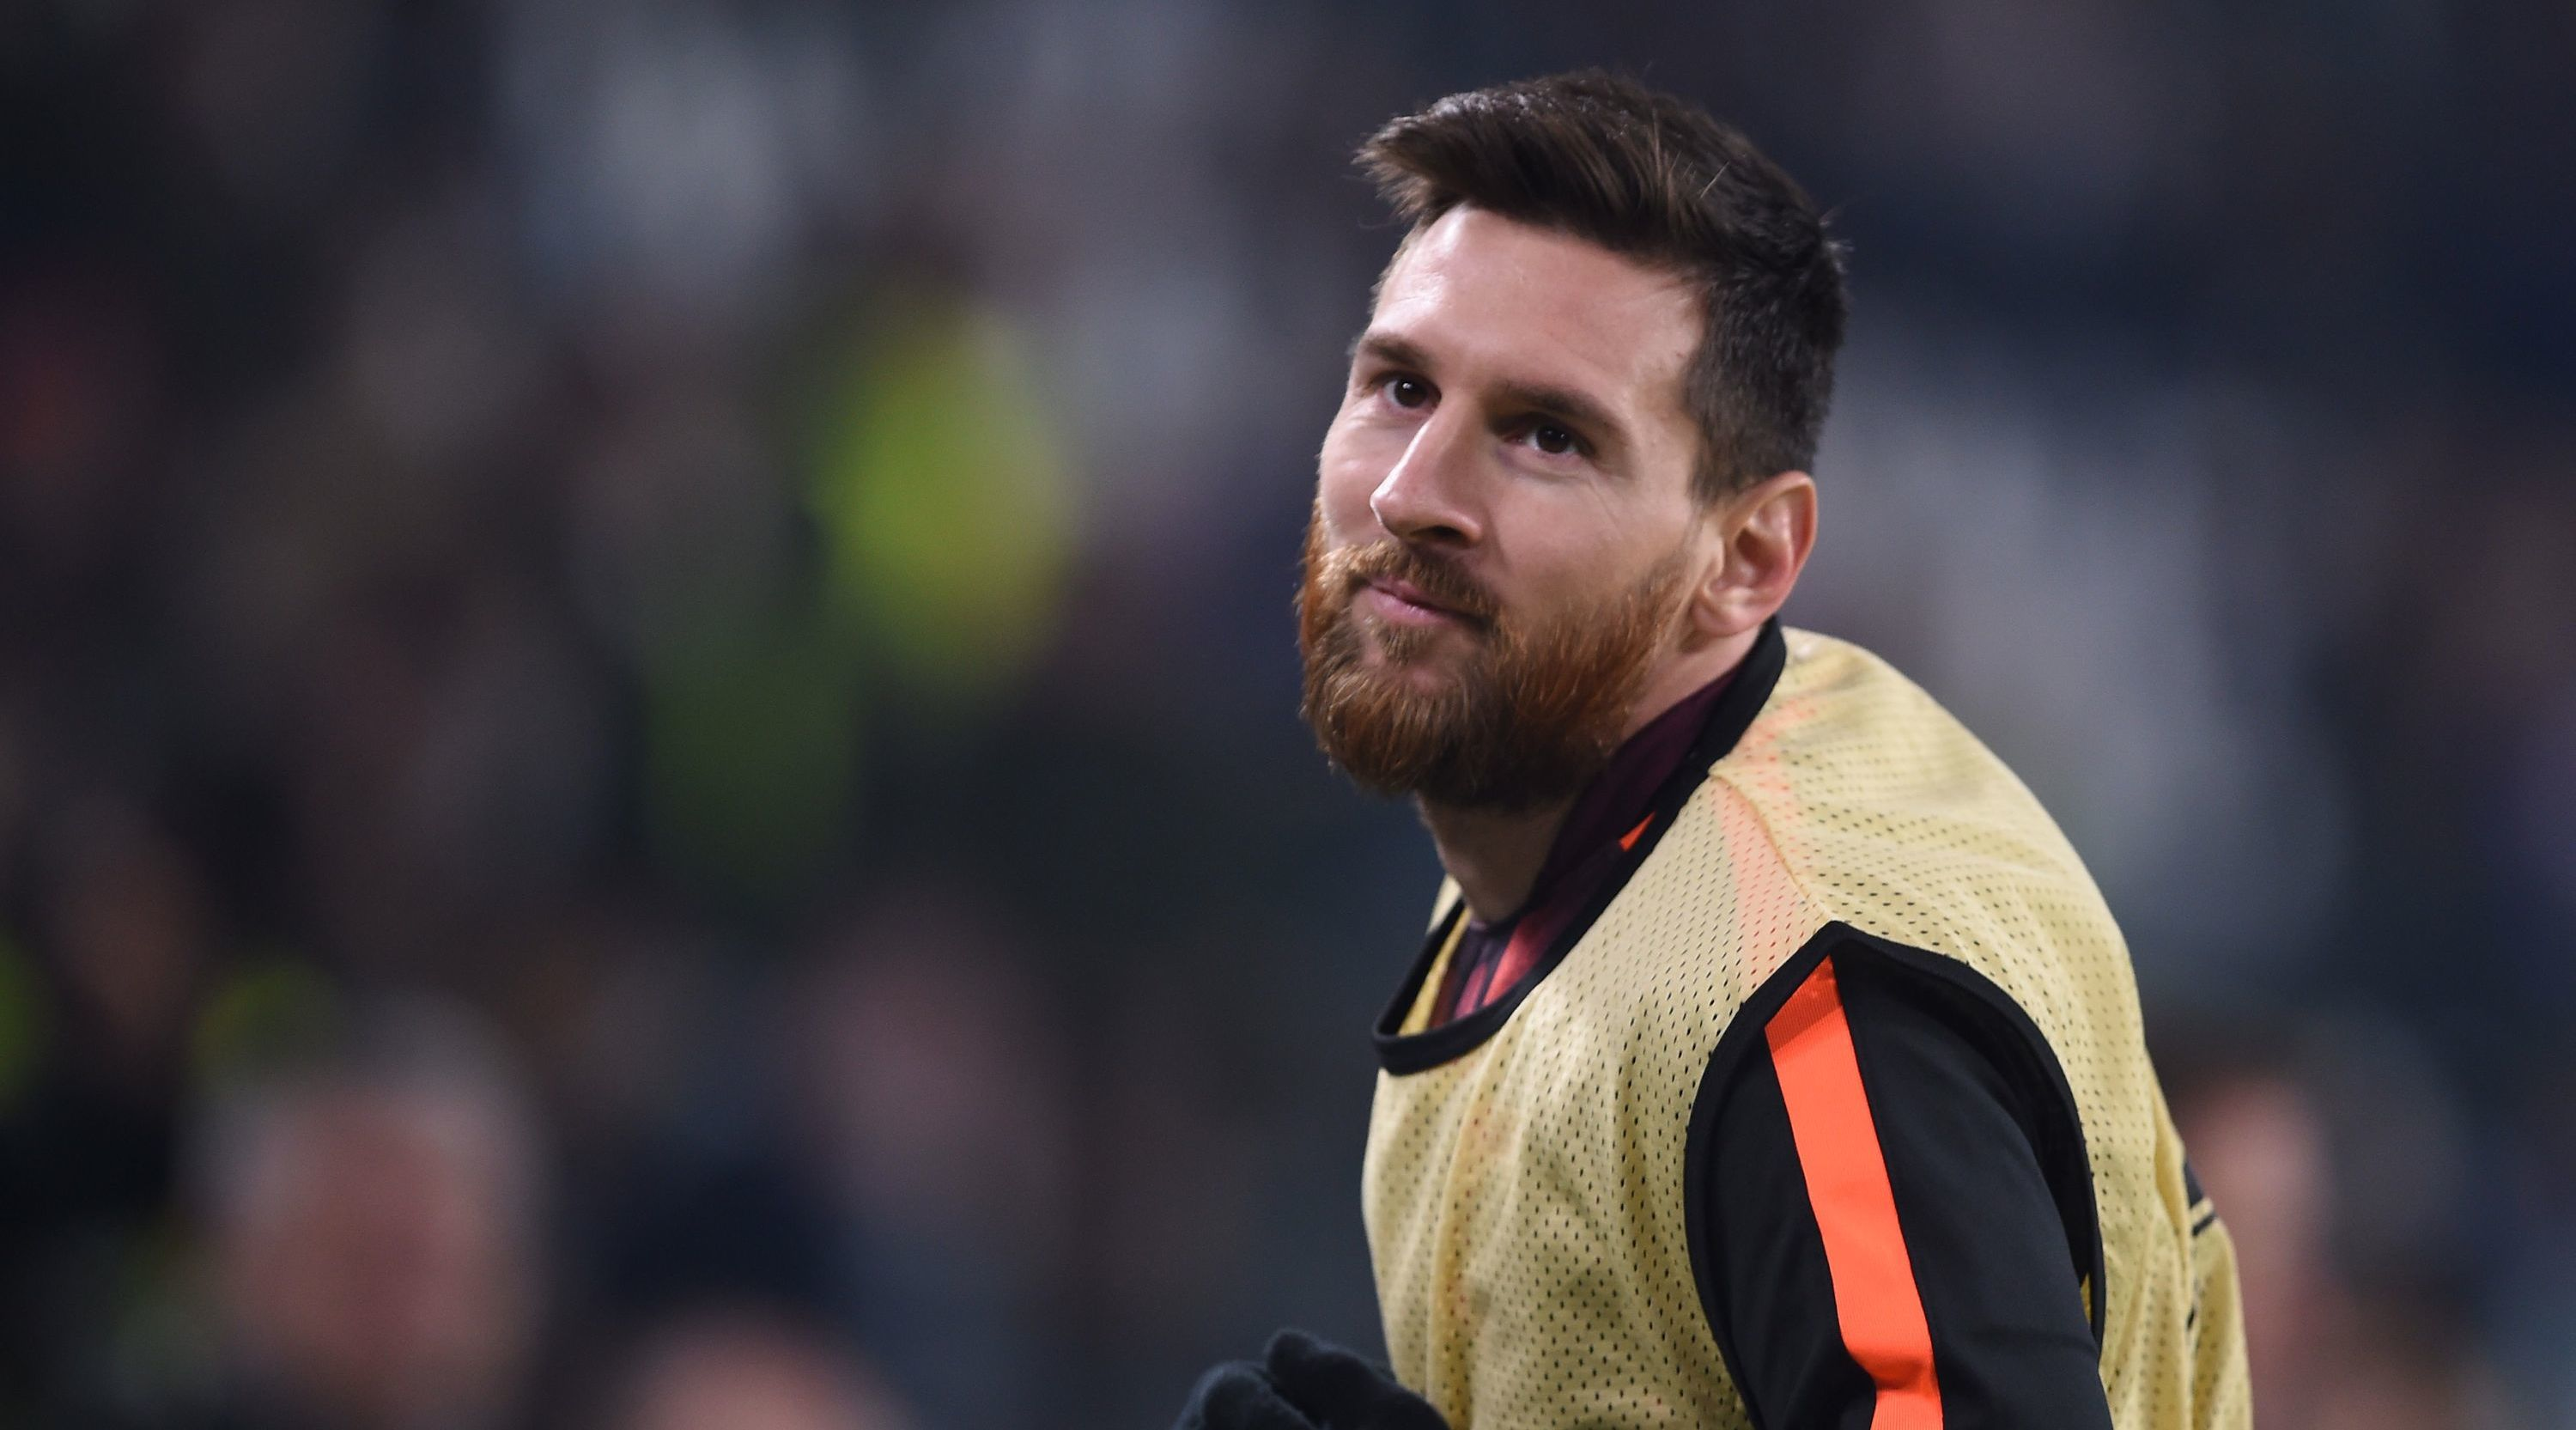 Barcelona's Argentinian forward Lionel Messi warms up during the UEFA Champions League Group D football match Juventus Barcelona on November 22, 2017 at the Juventus stadium in Turin. / AFP PHOTO / Filippo MONTEFORTE (Photo credit should read FILIPPO MONTEFORTE/AFP/Getty Images)